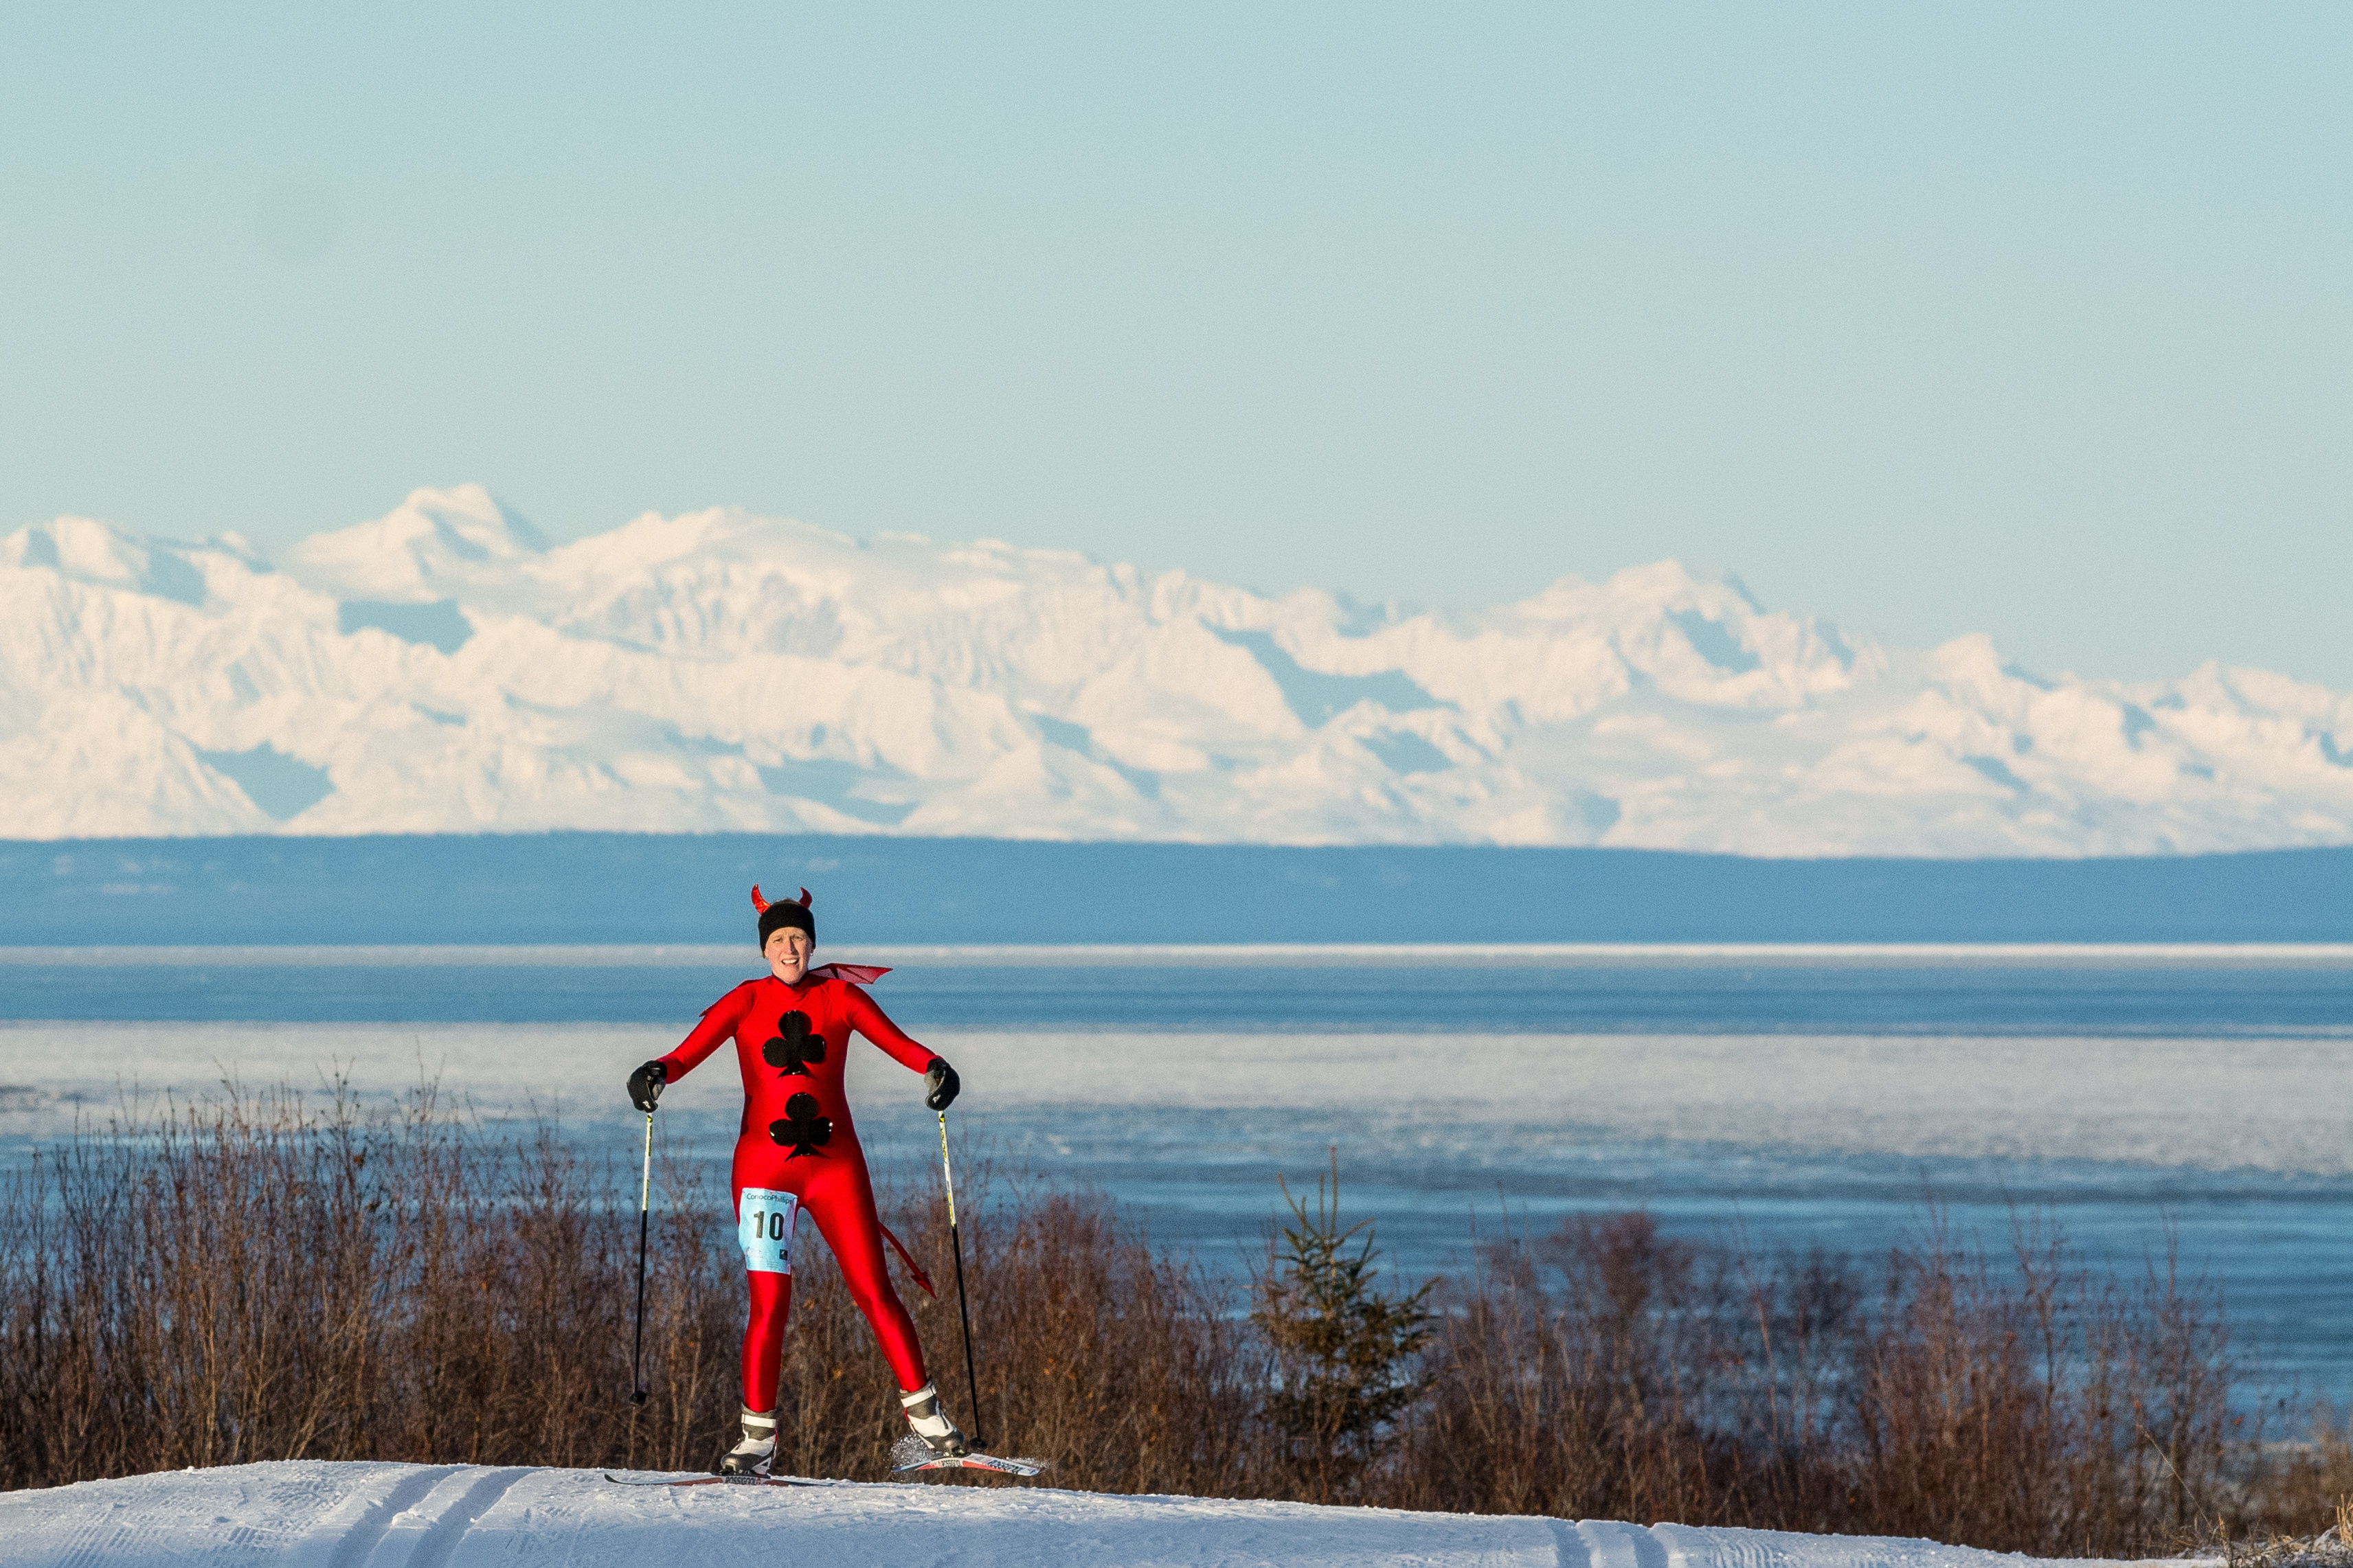 Cross Country Skis Nordic Skis The House Com >> Alaska Ski For Women Superbowl Sunday Join The Fun Support The